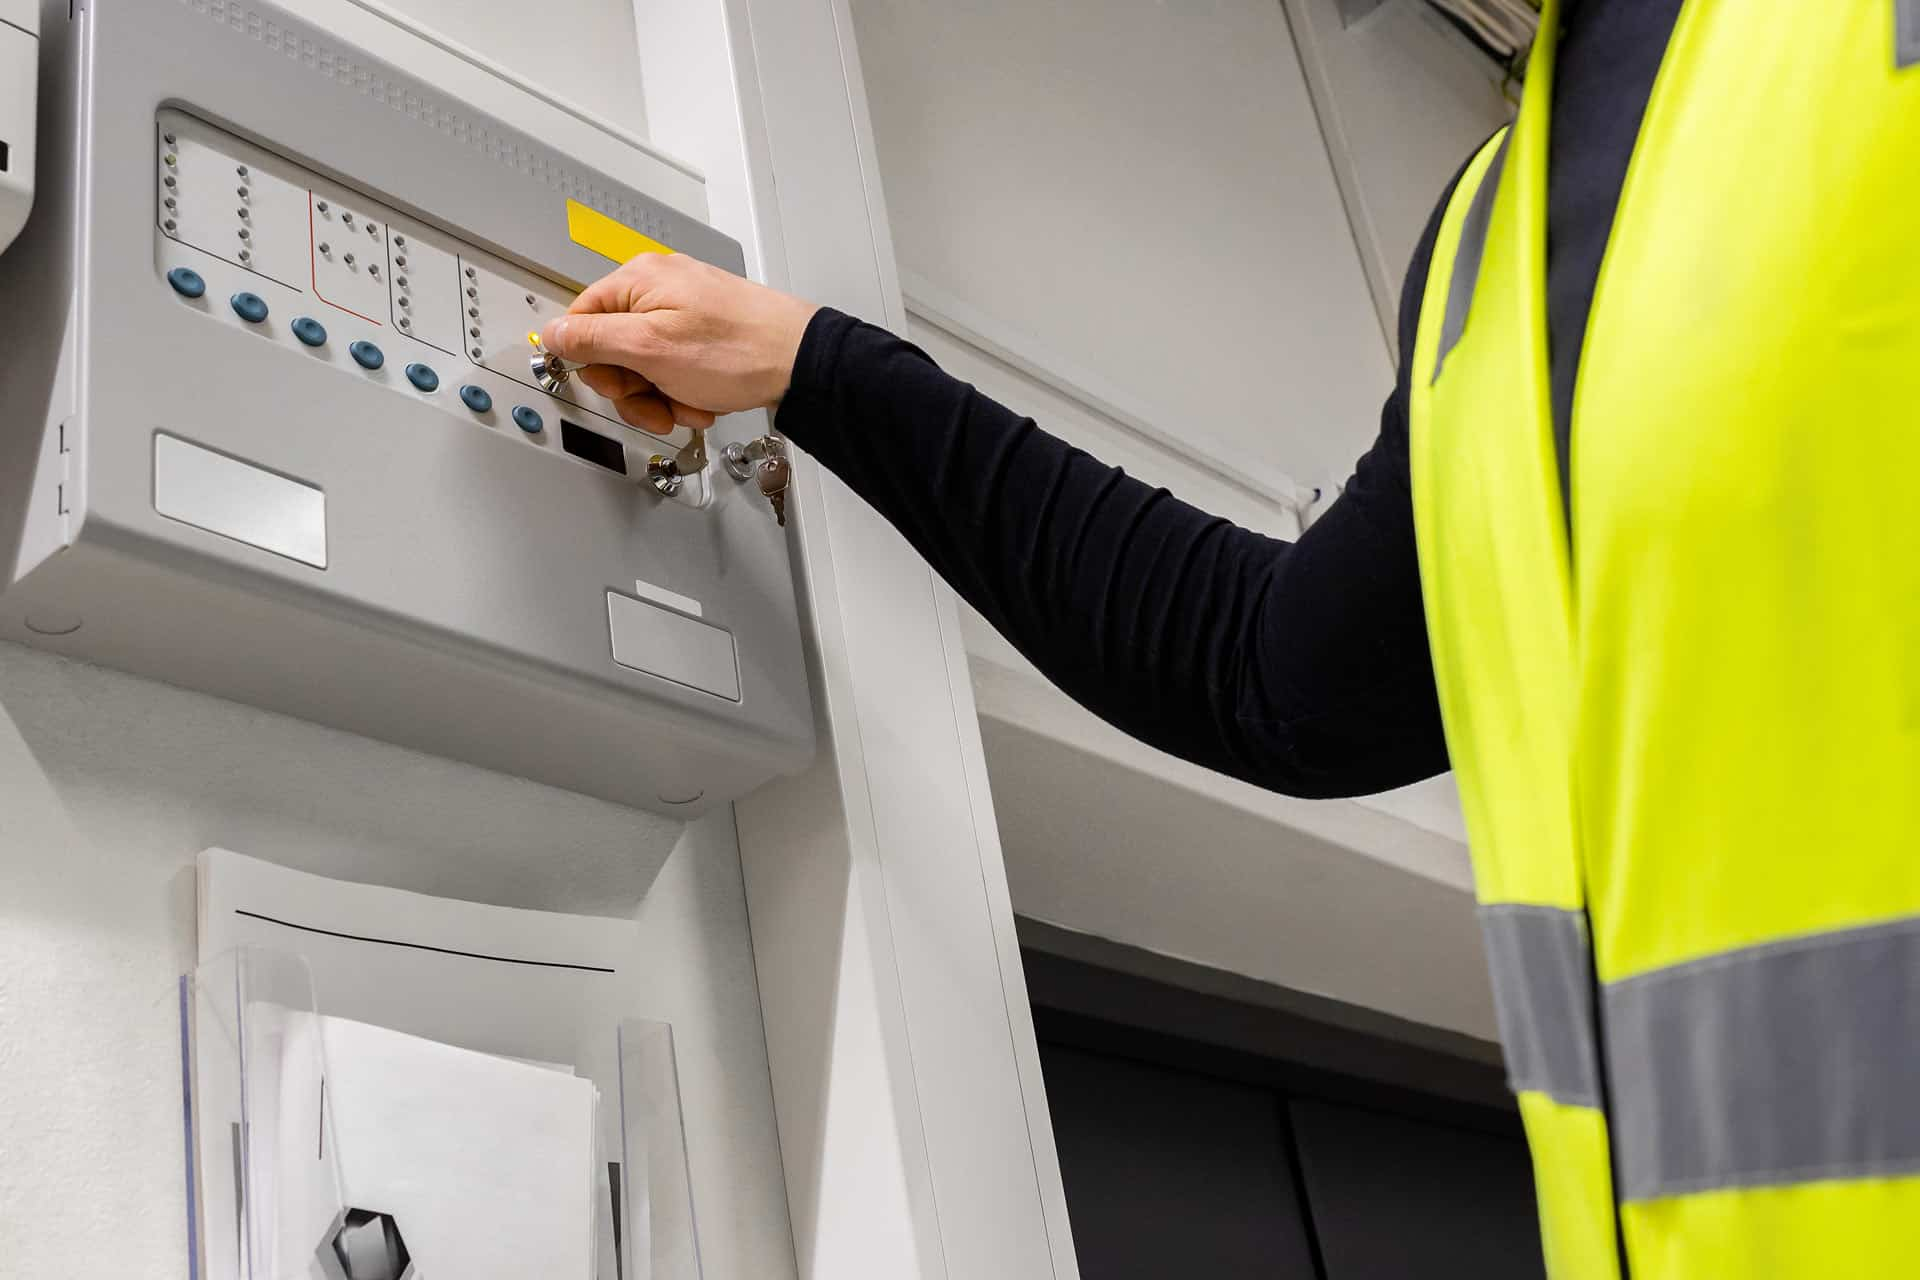 Fire and Life Safety Director operating a fire alarm system